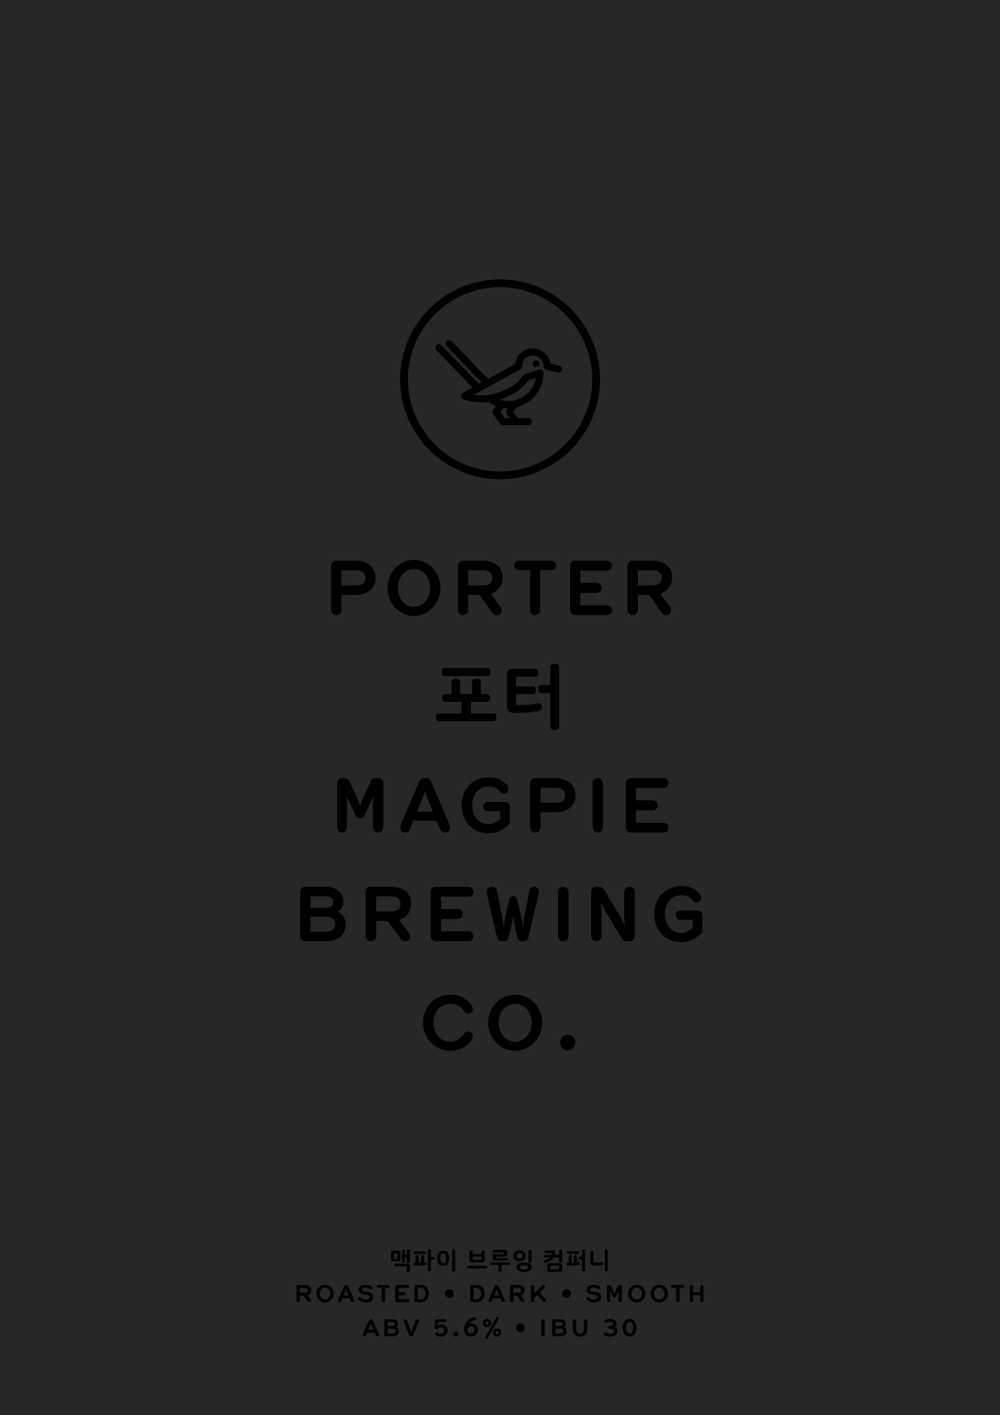 magpie-online-posters6.png